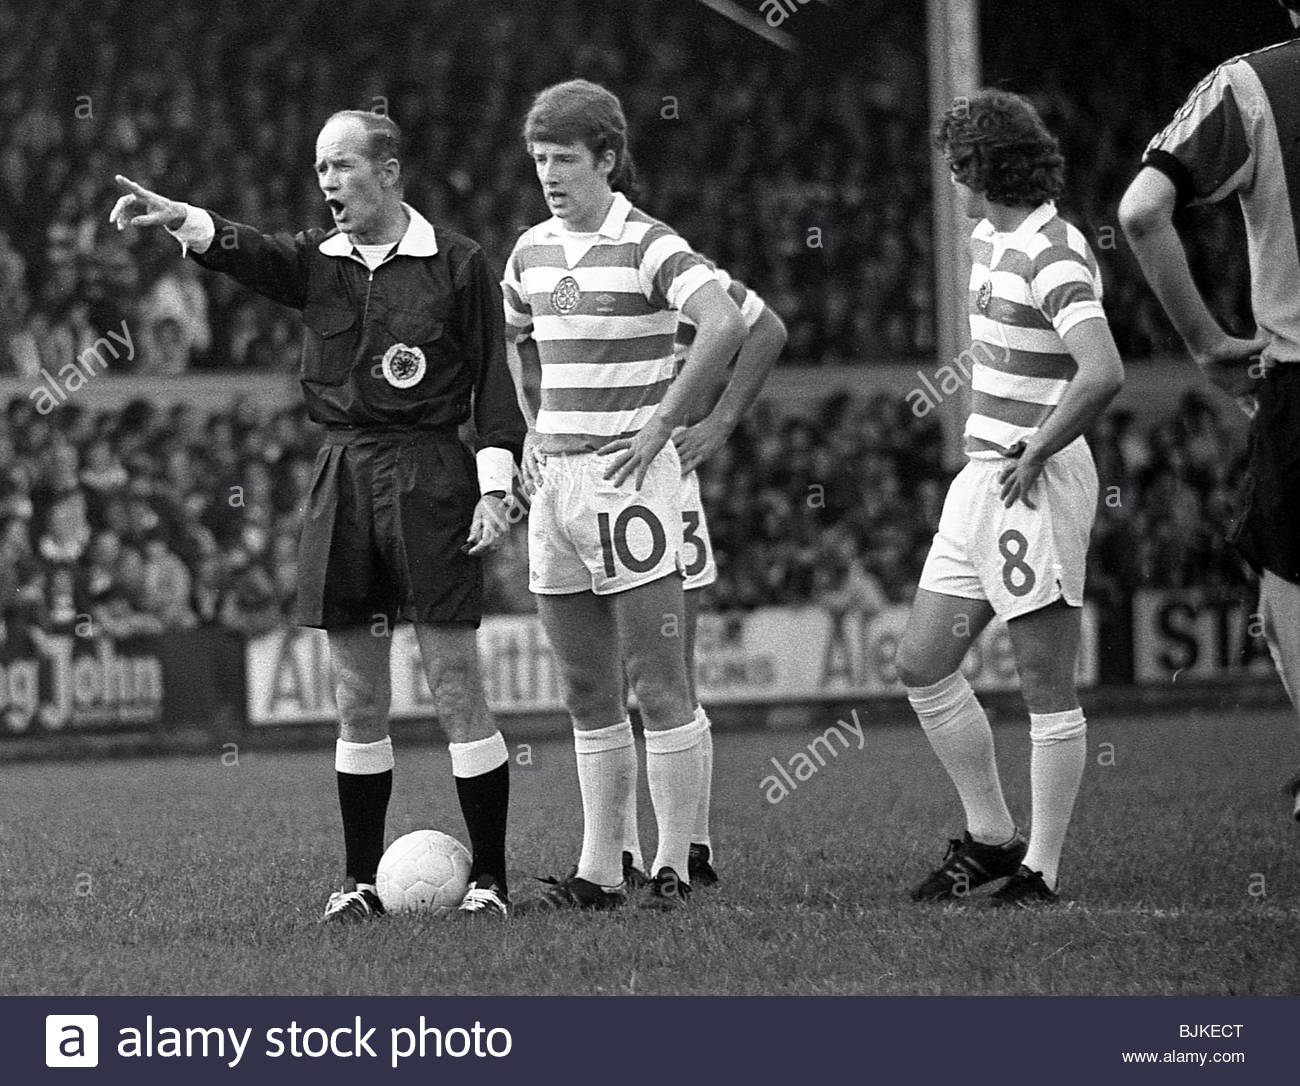 23/09/78 PREMIER DIVISION PARTICK THISTLE V CELTIC (2-3) FIRHILL - GLASGOW Referee Tom Kellock orders the defensive - Stock Image